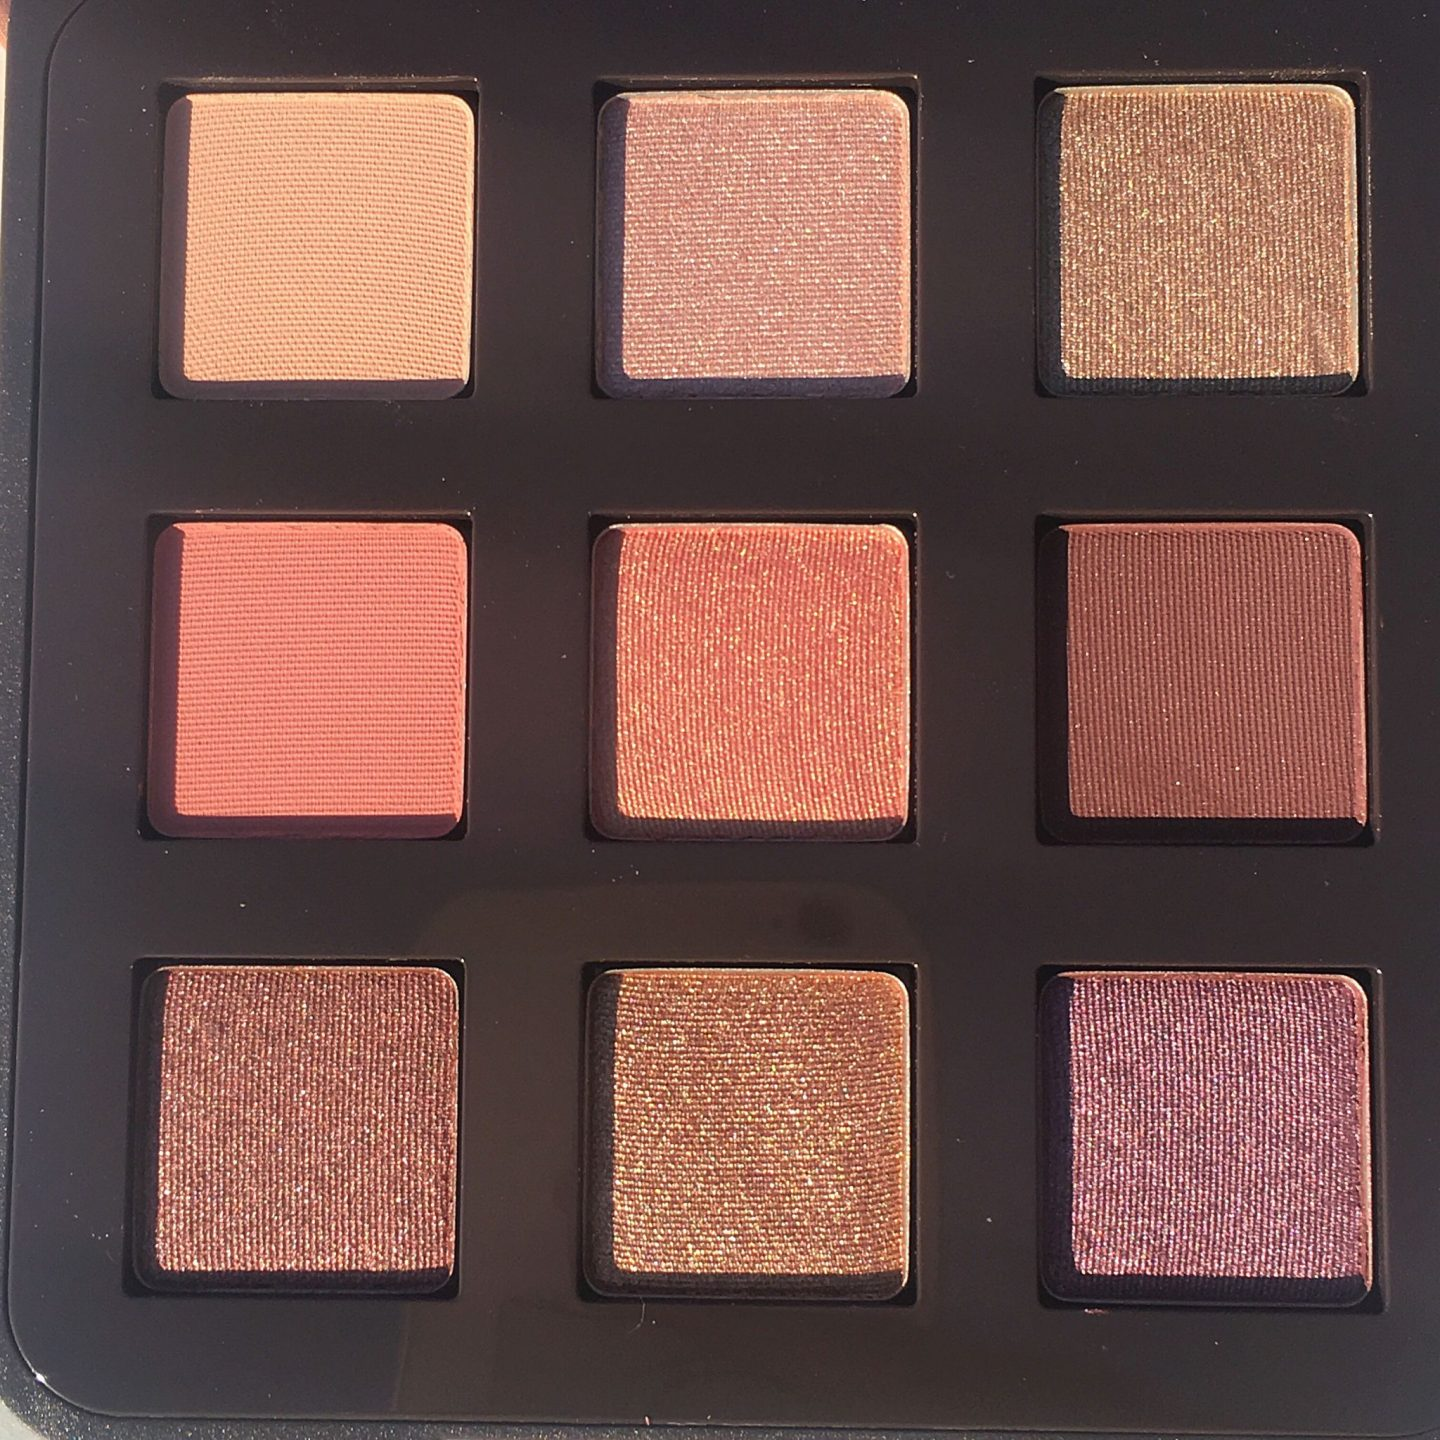 Viseart Tryst Palette Review and Swatches Seamless Setting Powder Eye Primer www.calibeaute.com